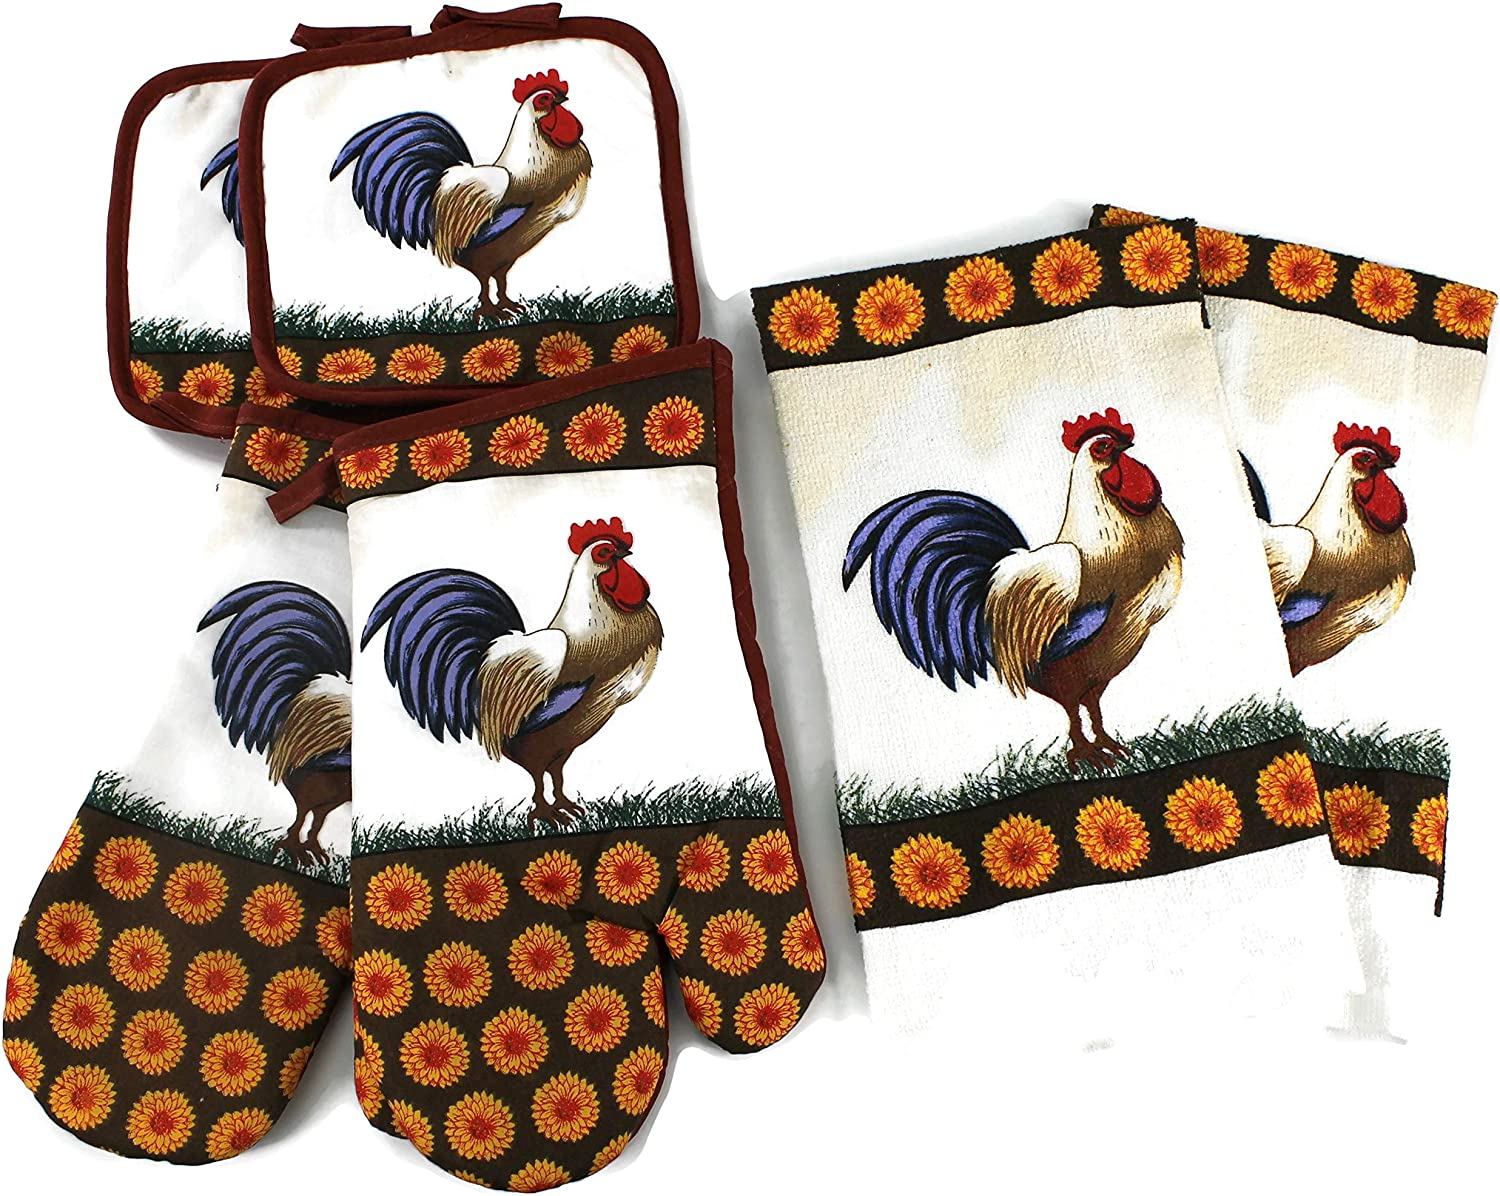 High End Home Farmhouse Rooster Collection 6 Piece Kitchen Decor Linen Set, Includes 1 Year Warranty, 2 Tea Towels, 2 Oven Mitts and 2 Pot Holders, Blue Tail Orange and Brown